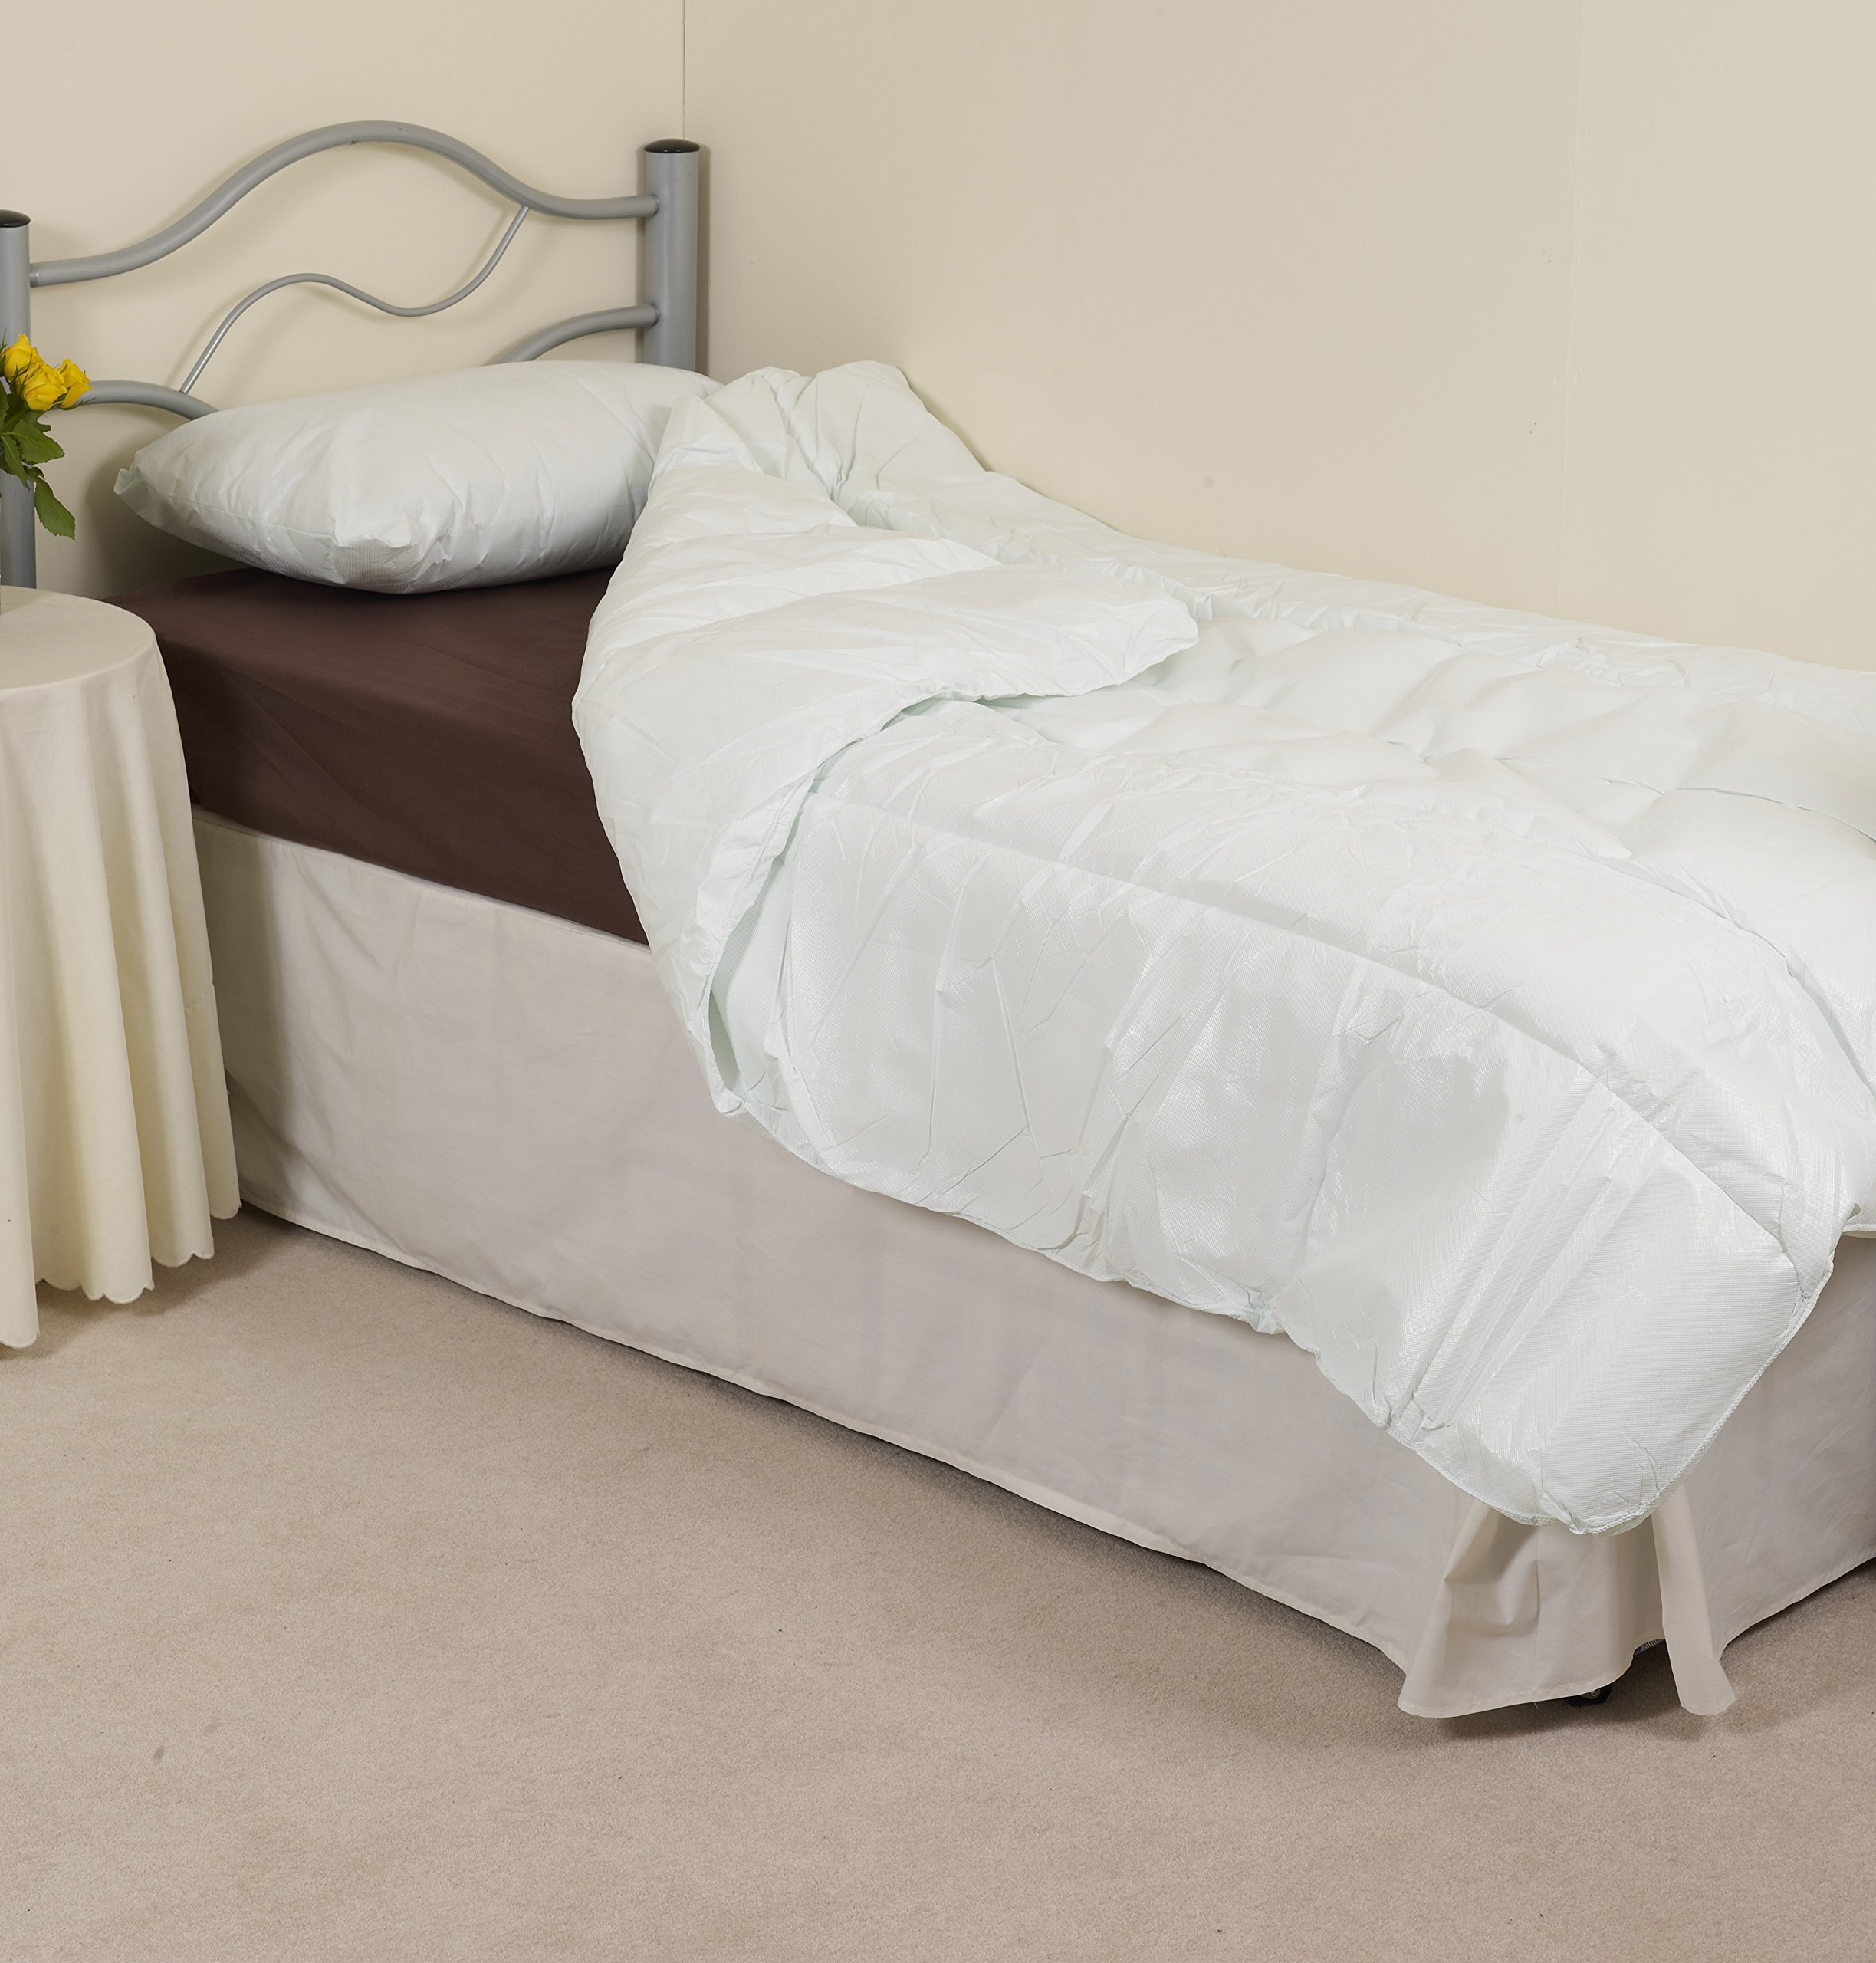 NRS Healthcare Single Waterproof and Wipe Clean Duvet (Eligible for VAT relief in the UK) by NRS Healthcare